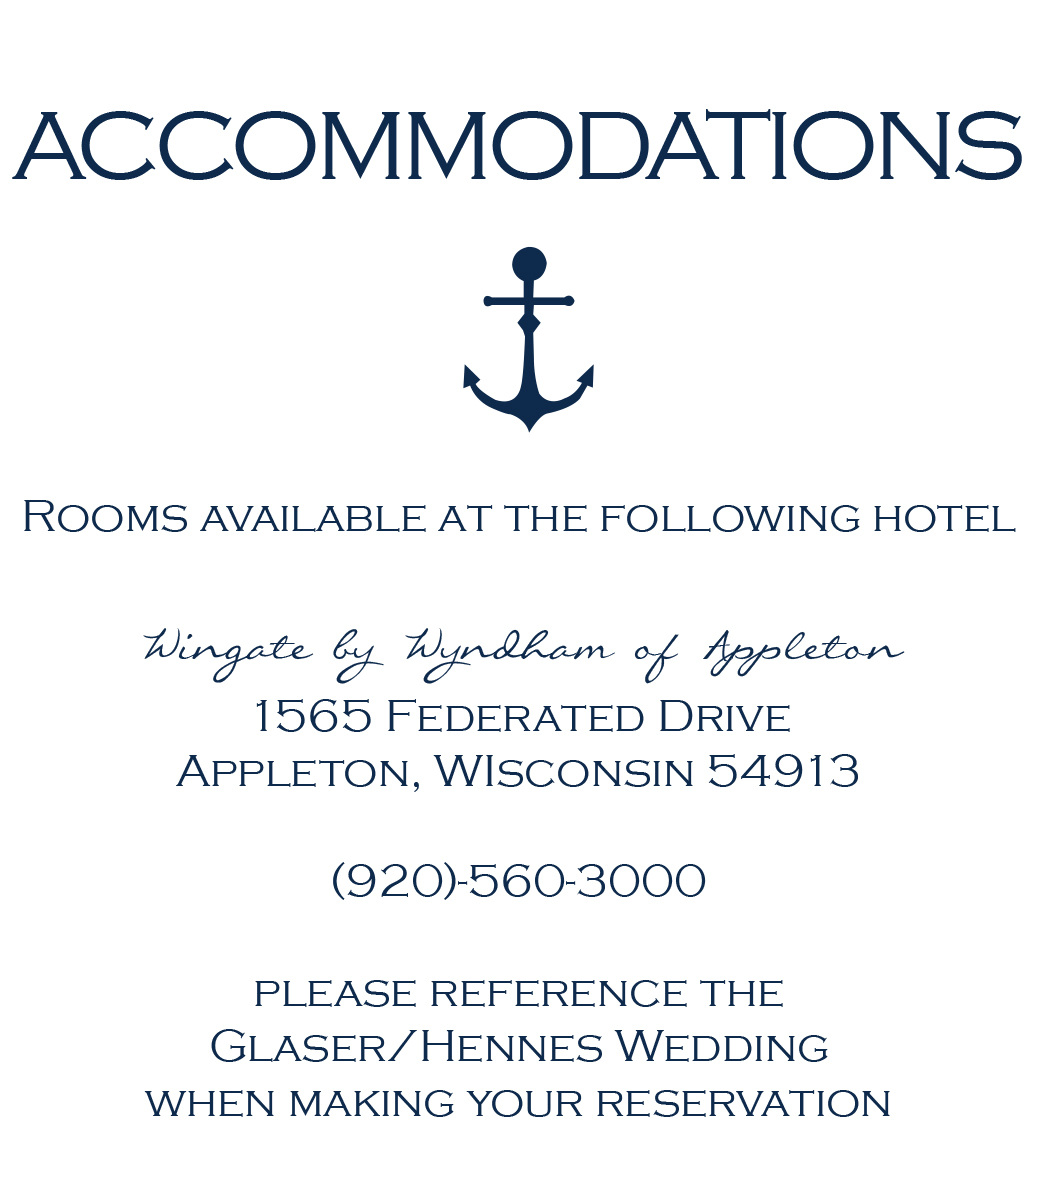 Sailing Away accommodations card